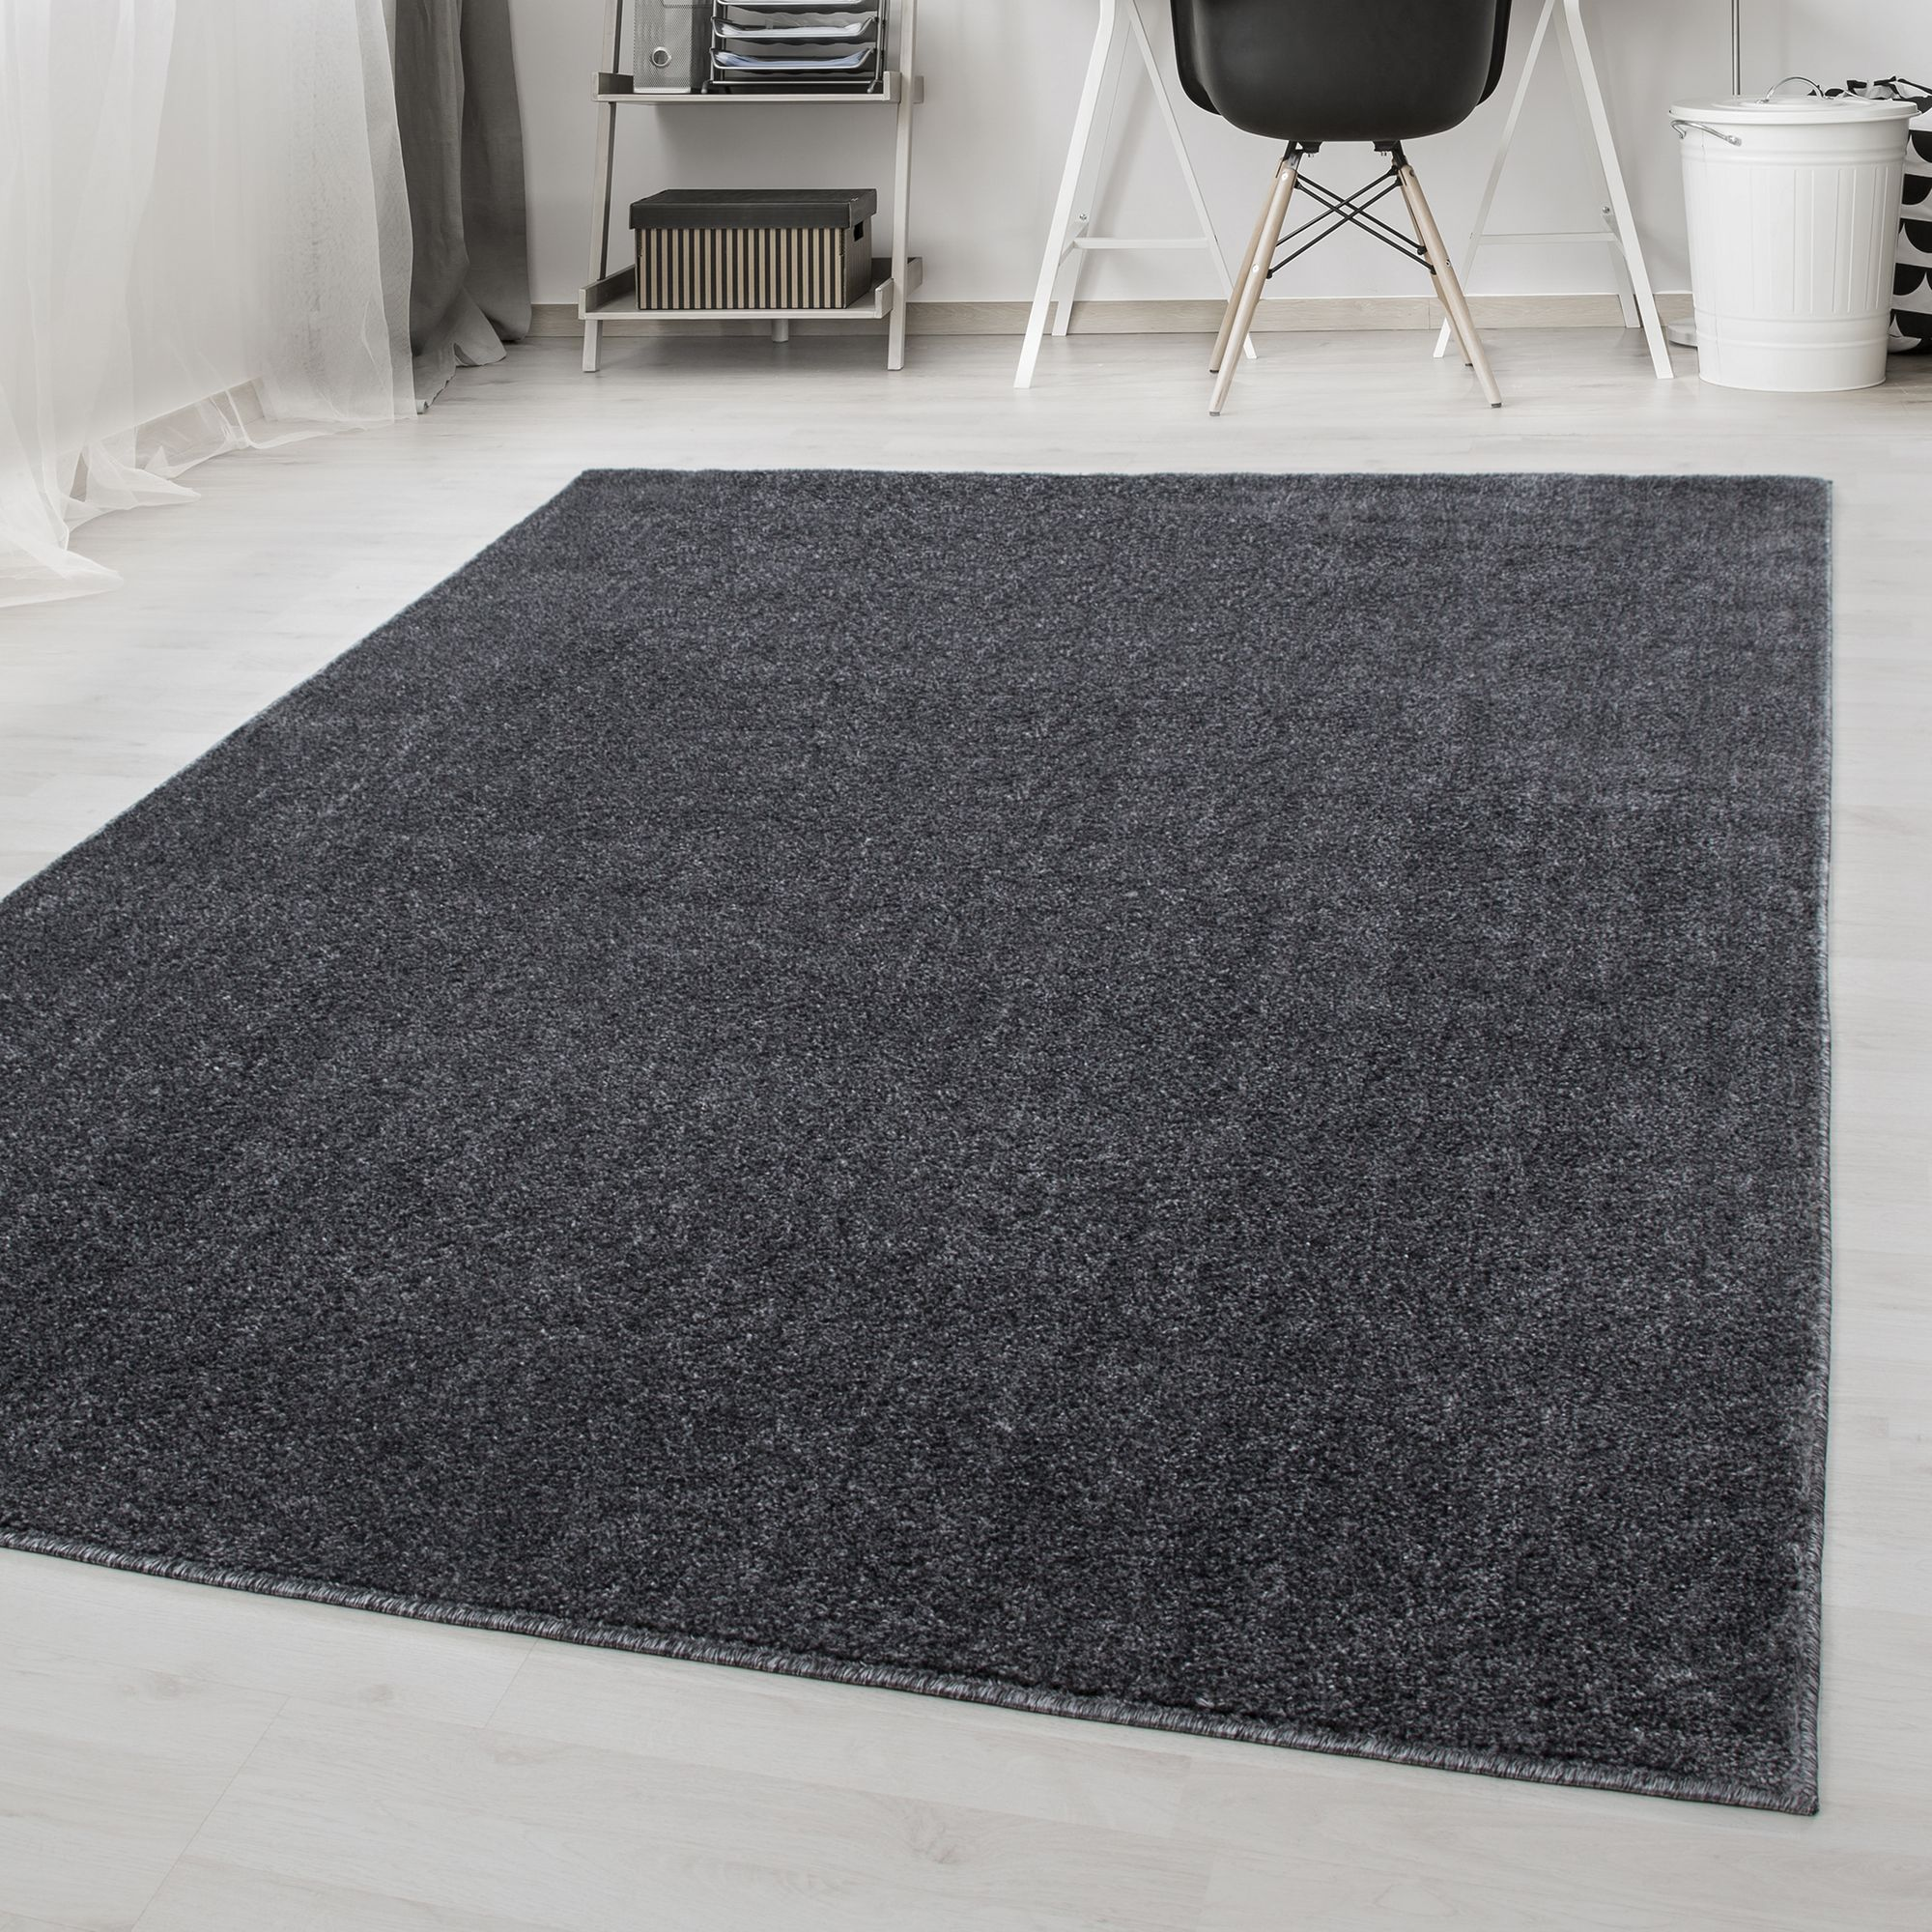 Area Rugs Short Pile Plain Modern